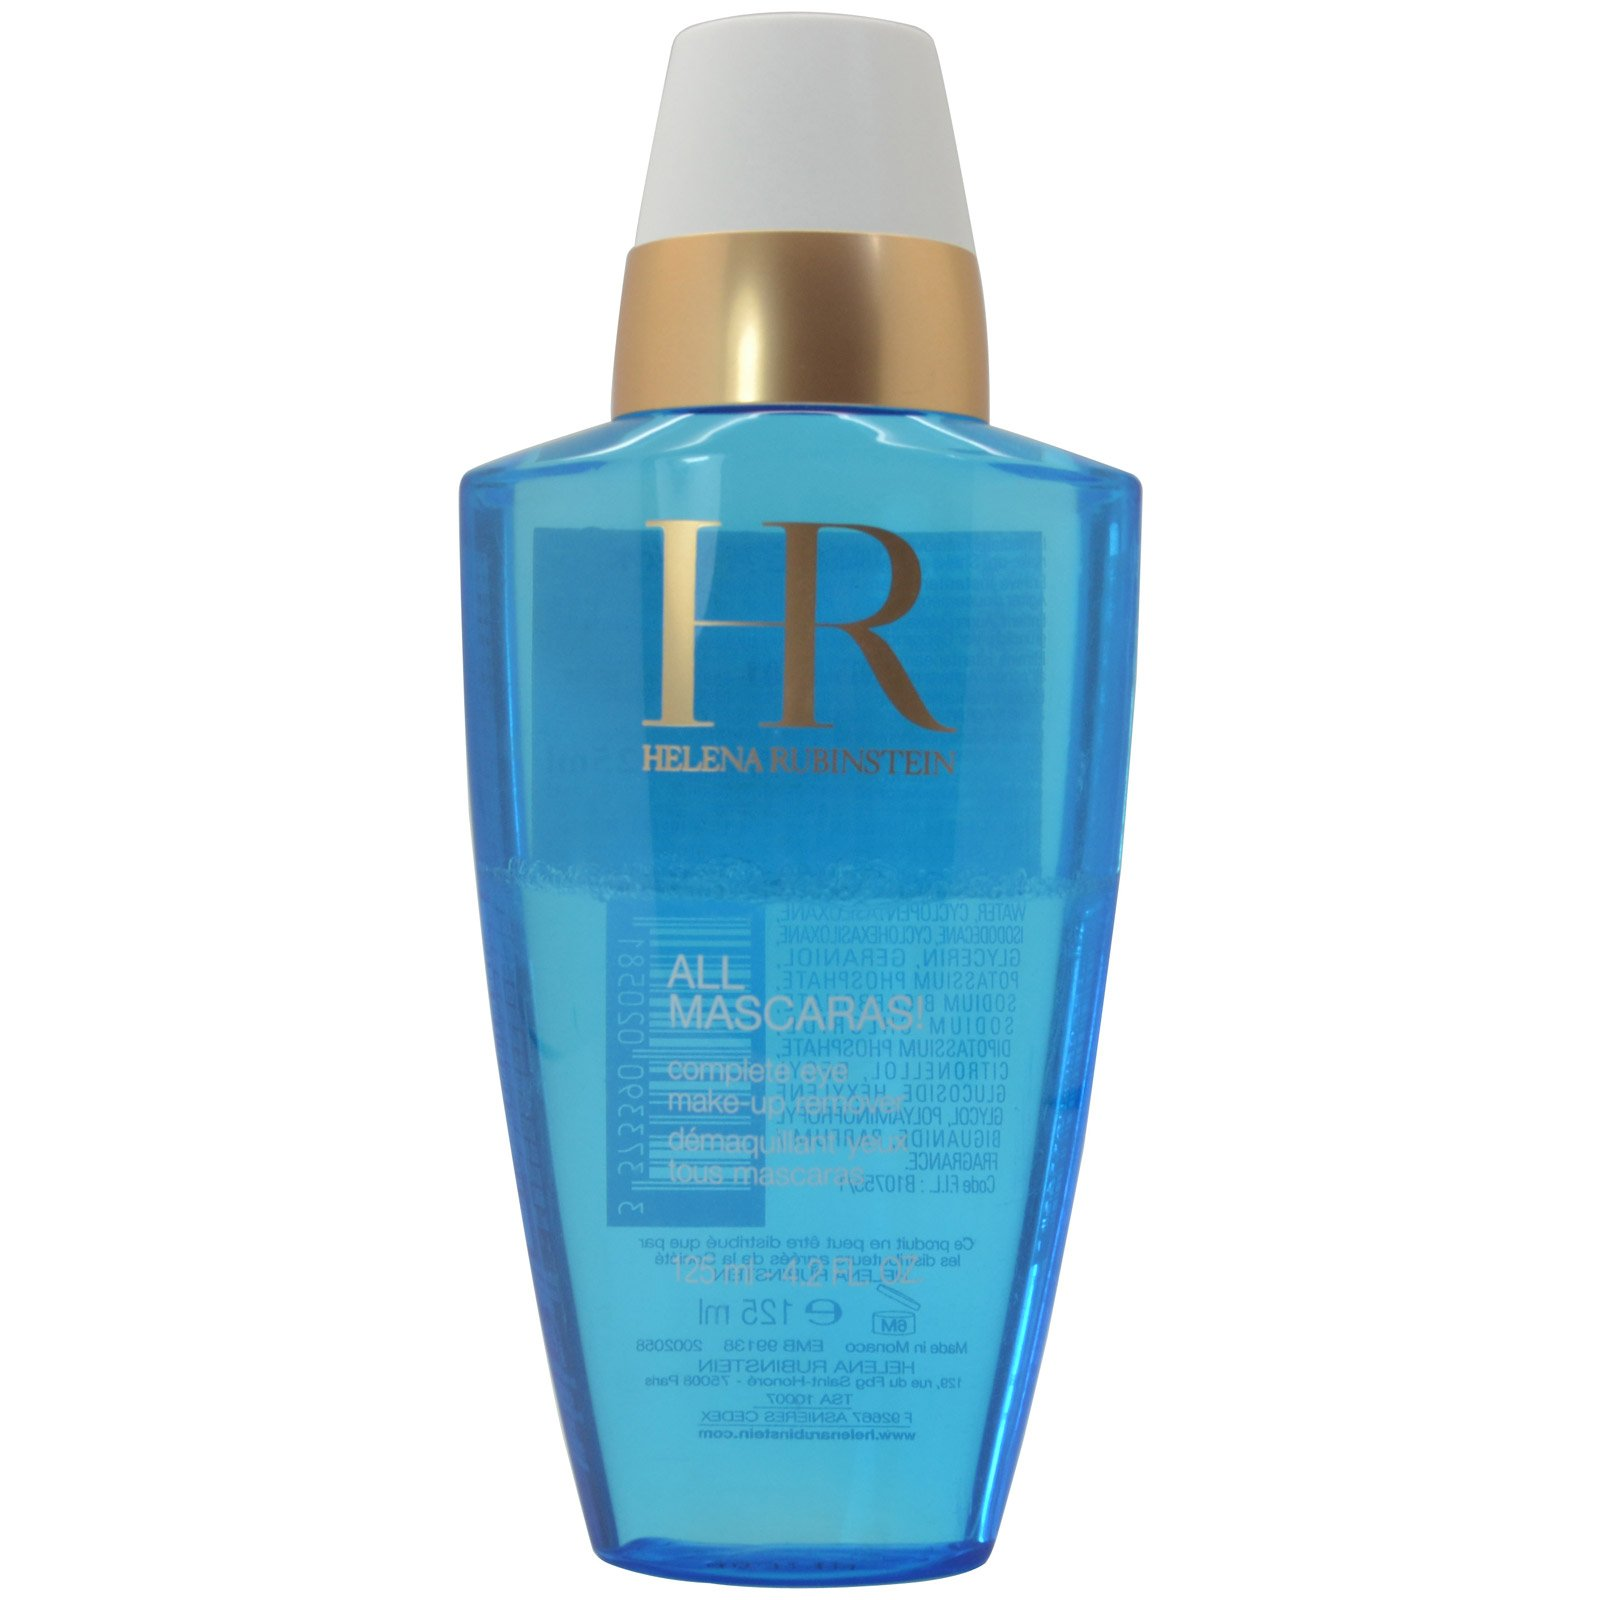 Helena Rubinstein All Mascaras! Makeup Remover for Women, 4.2 Ounce